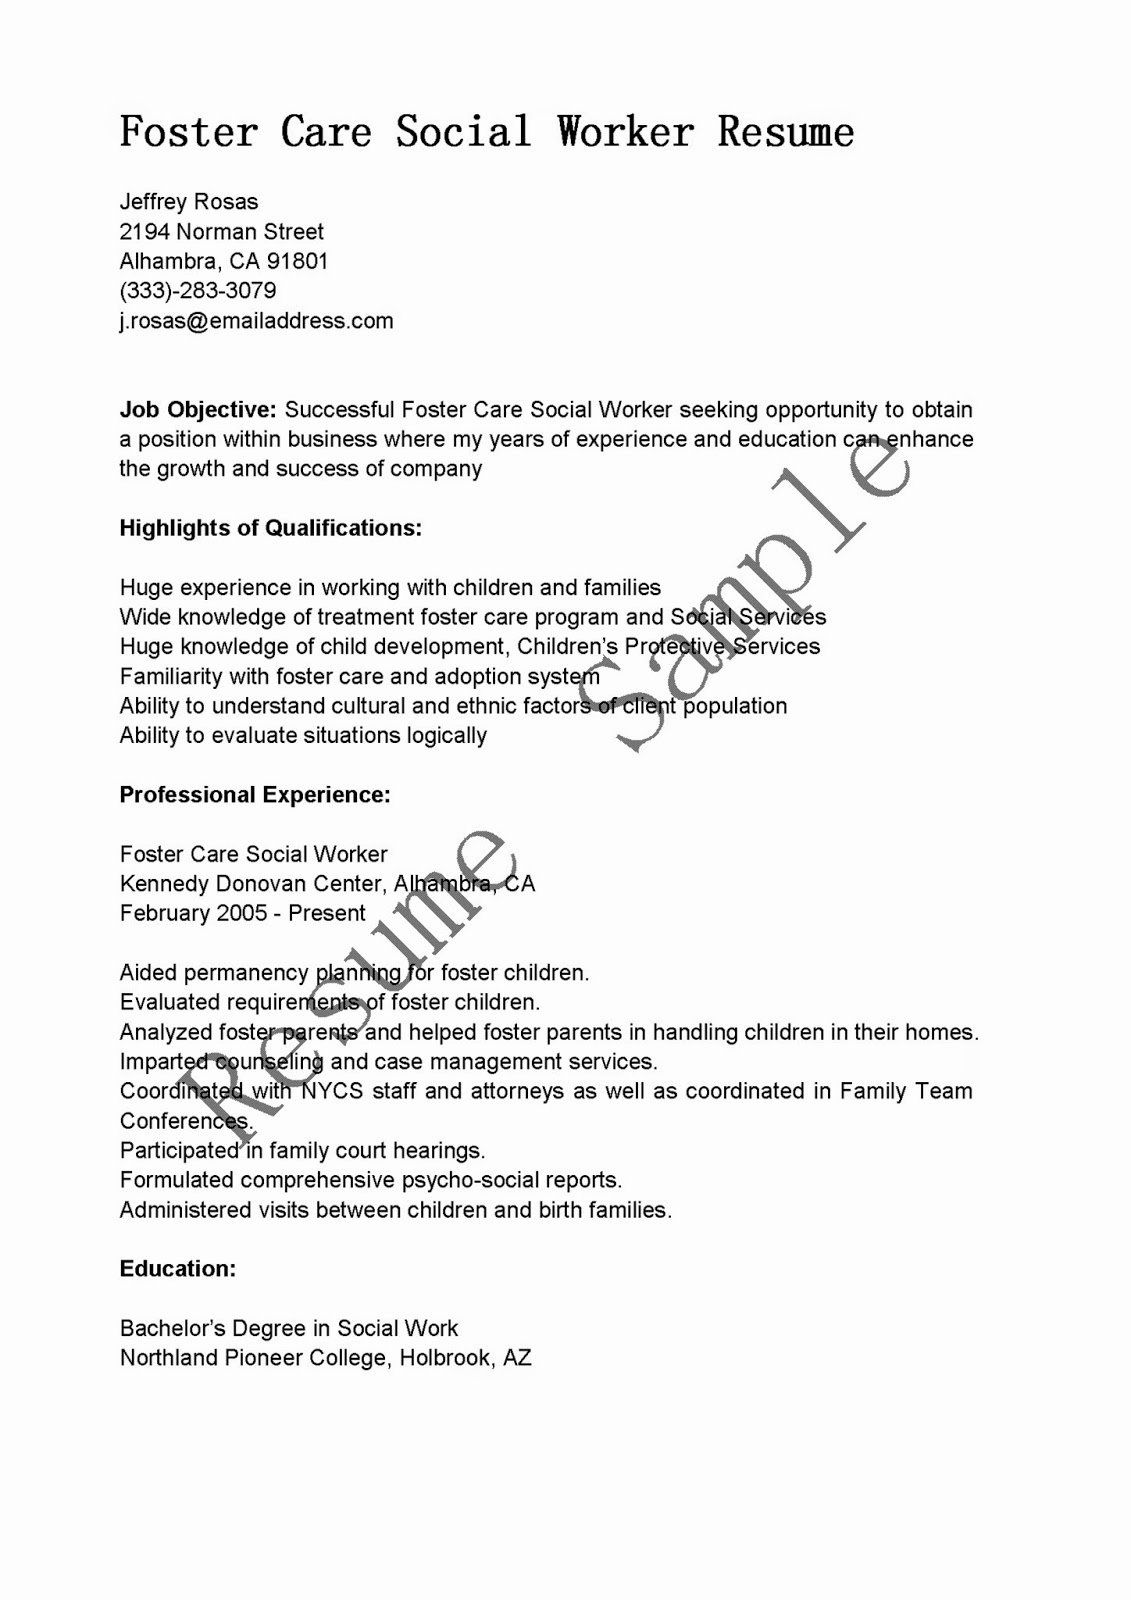 social worker resume example unique samples care sample in good examples dental hygiene Resume Foster Care Social Worker Resume